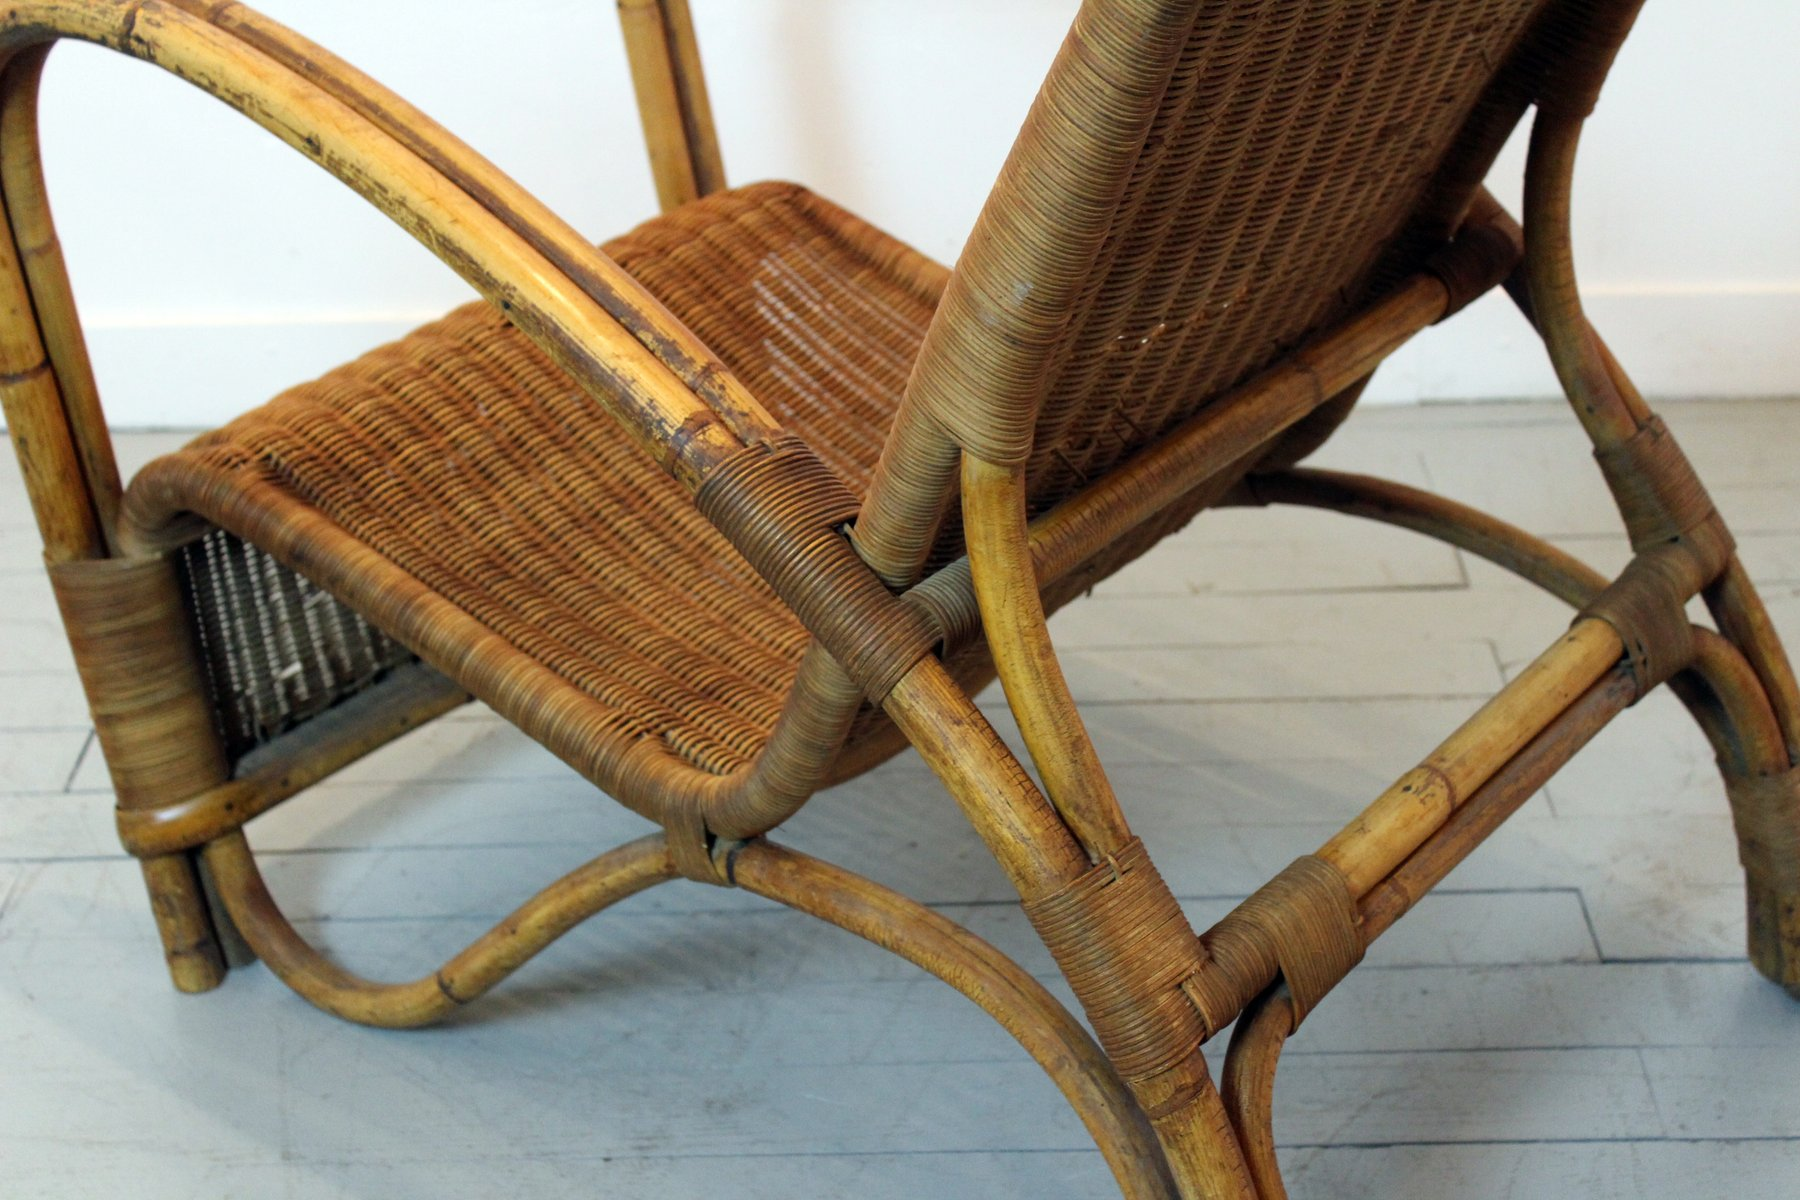 Vintage Rattan Chairs Vintage Bamboo And Rattan Lounge Chair For Sale At Pamono